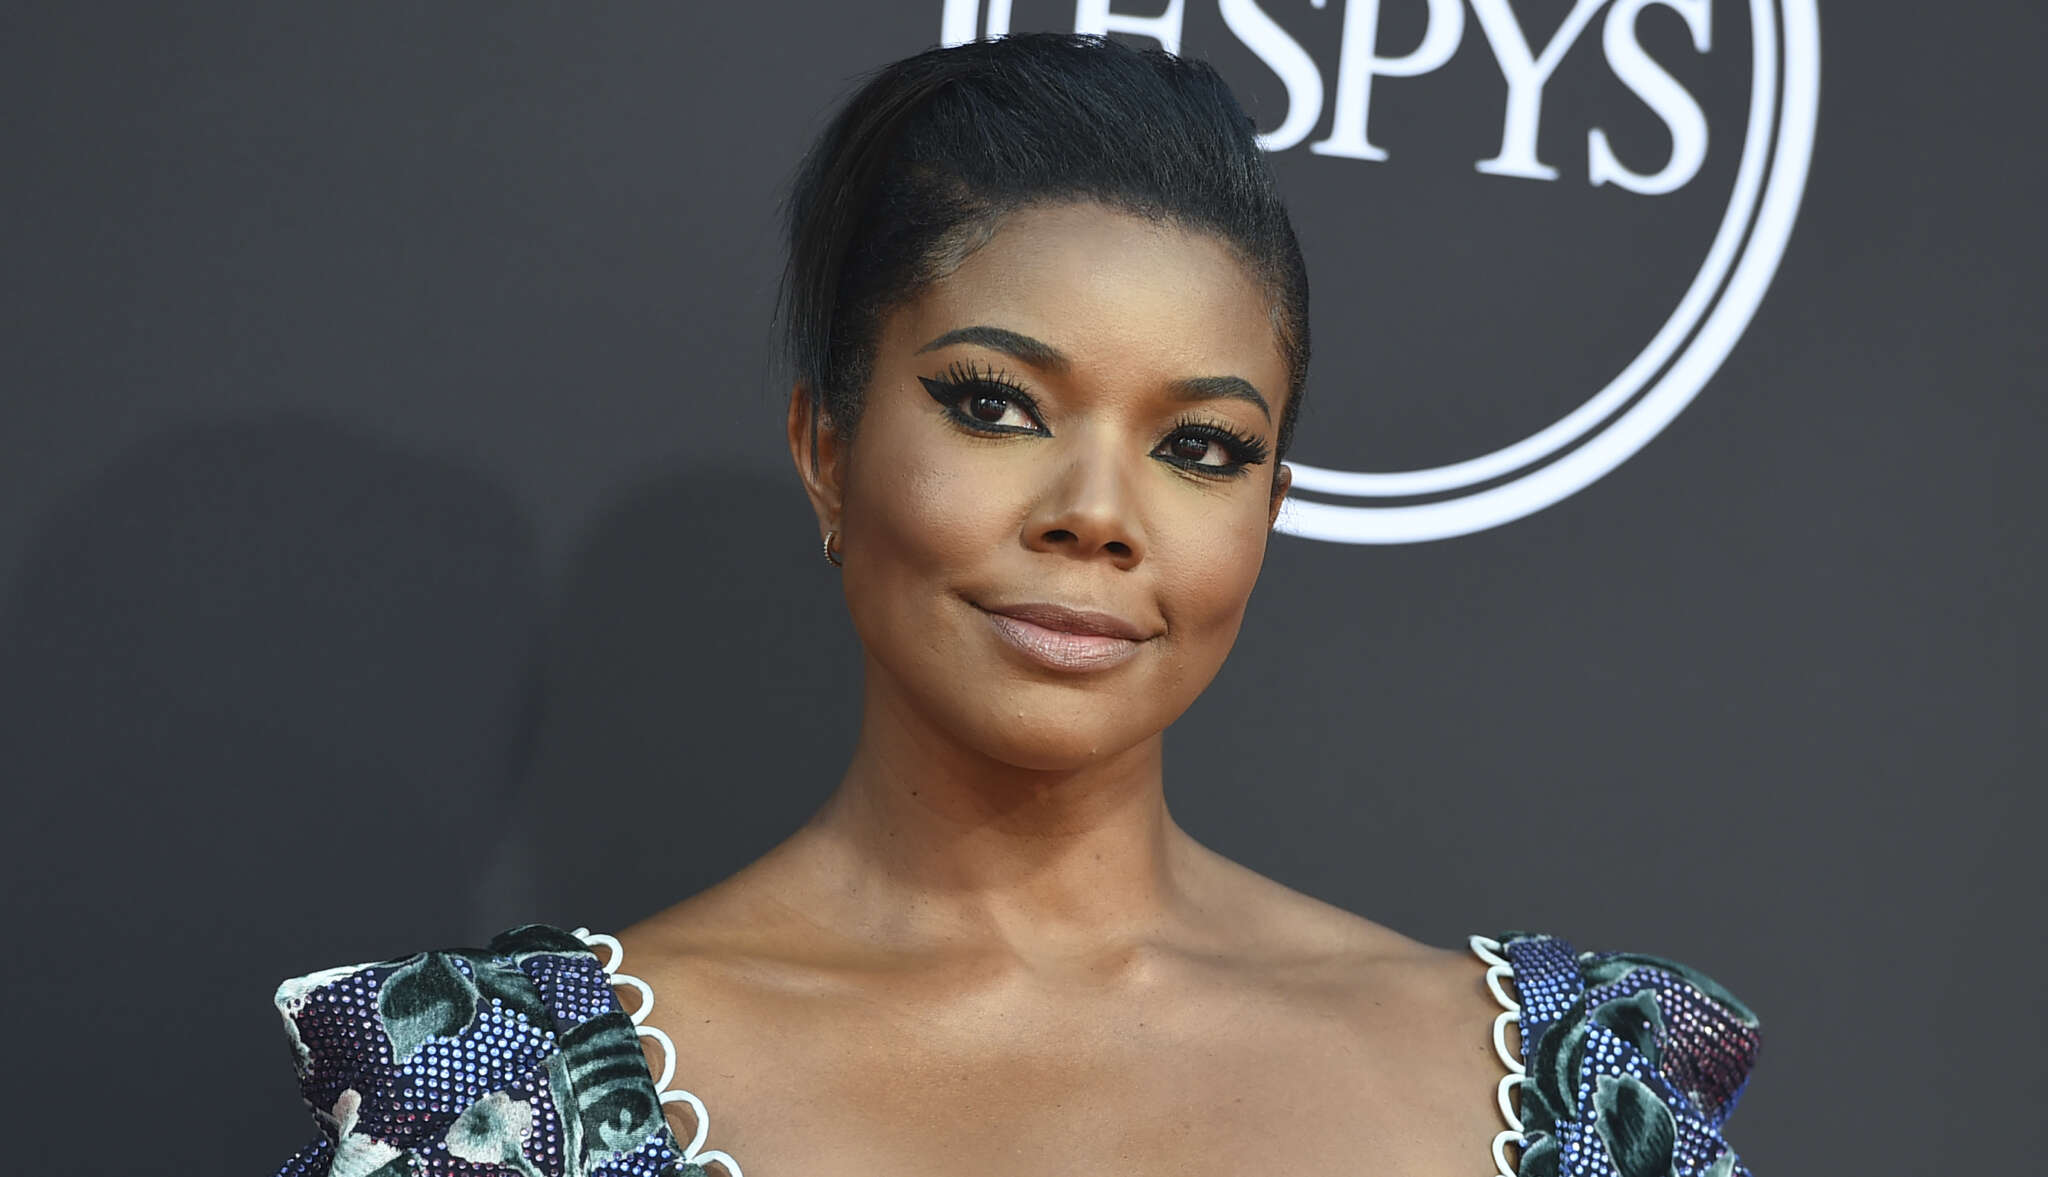 gabrielle-union-is-glowing-from-within-in-this-yellow-dress-see-her-latest-photo-shoot